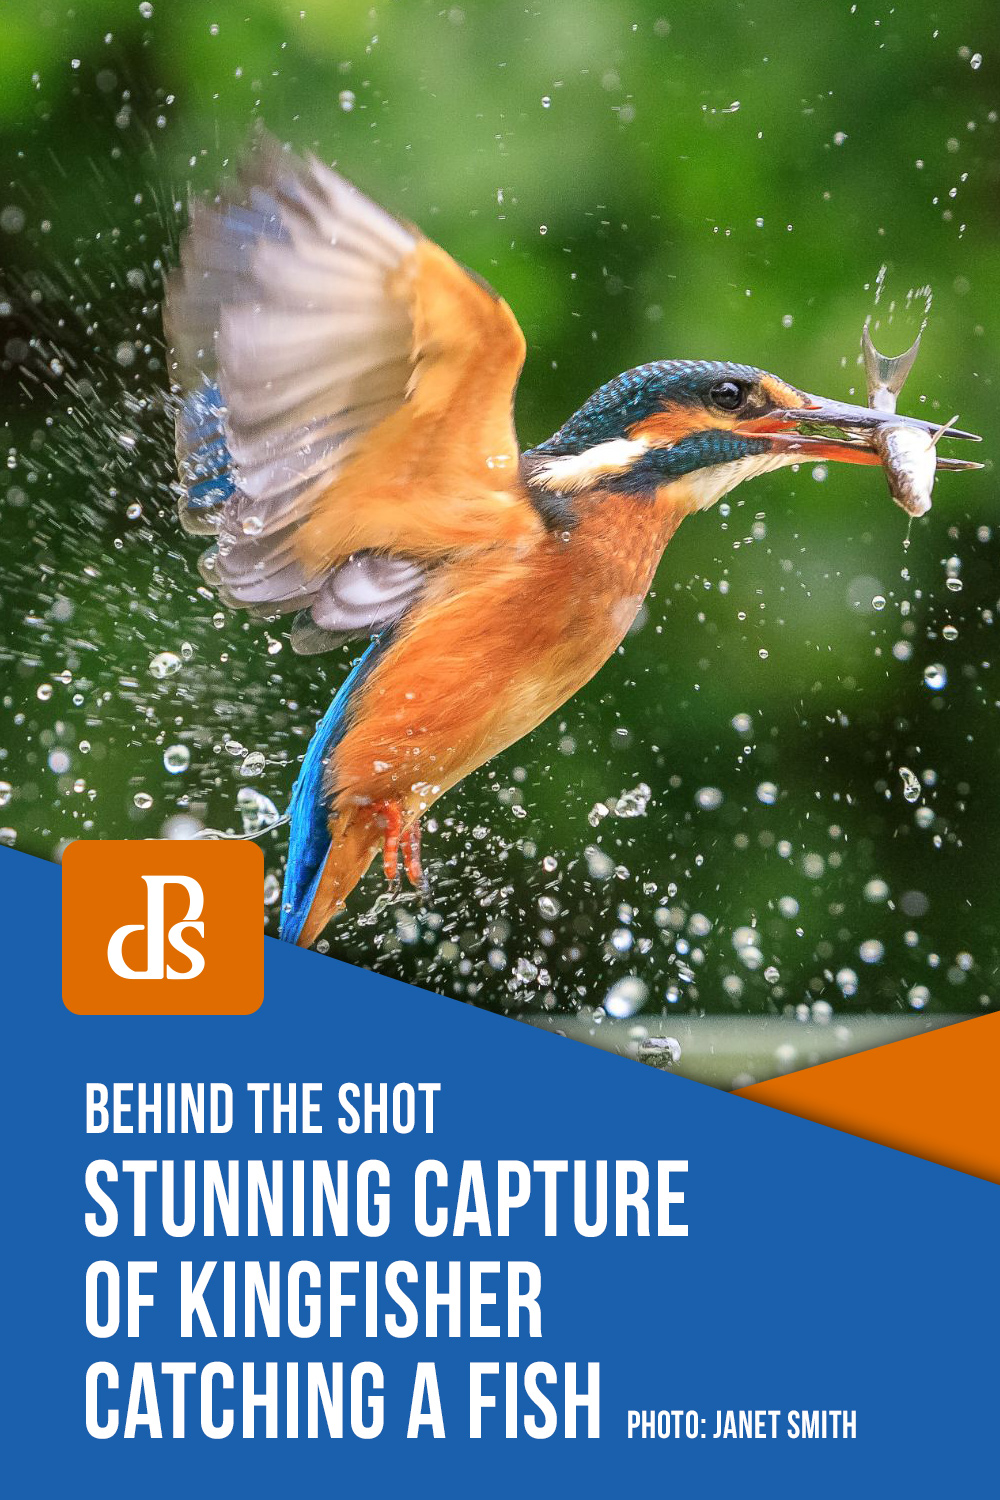 Stunning-Capture-of-Kingfisher-Catching-a-Fish-janet-smith